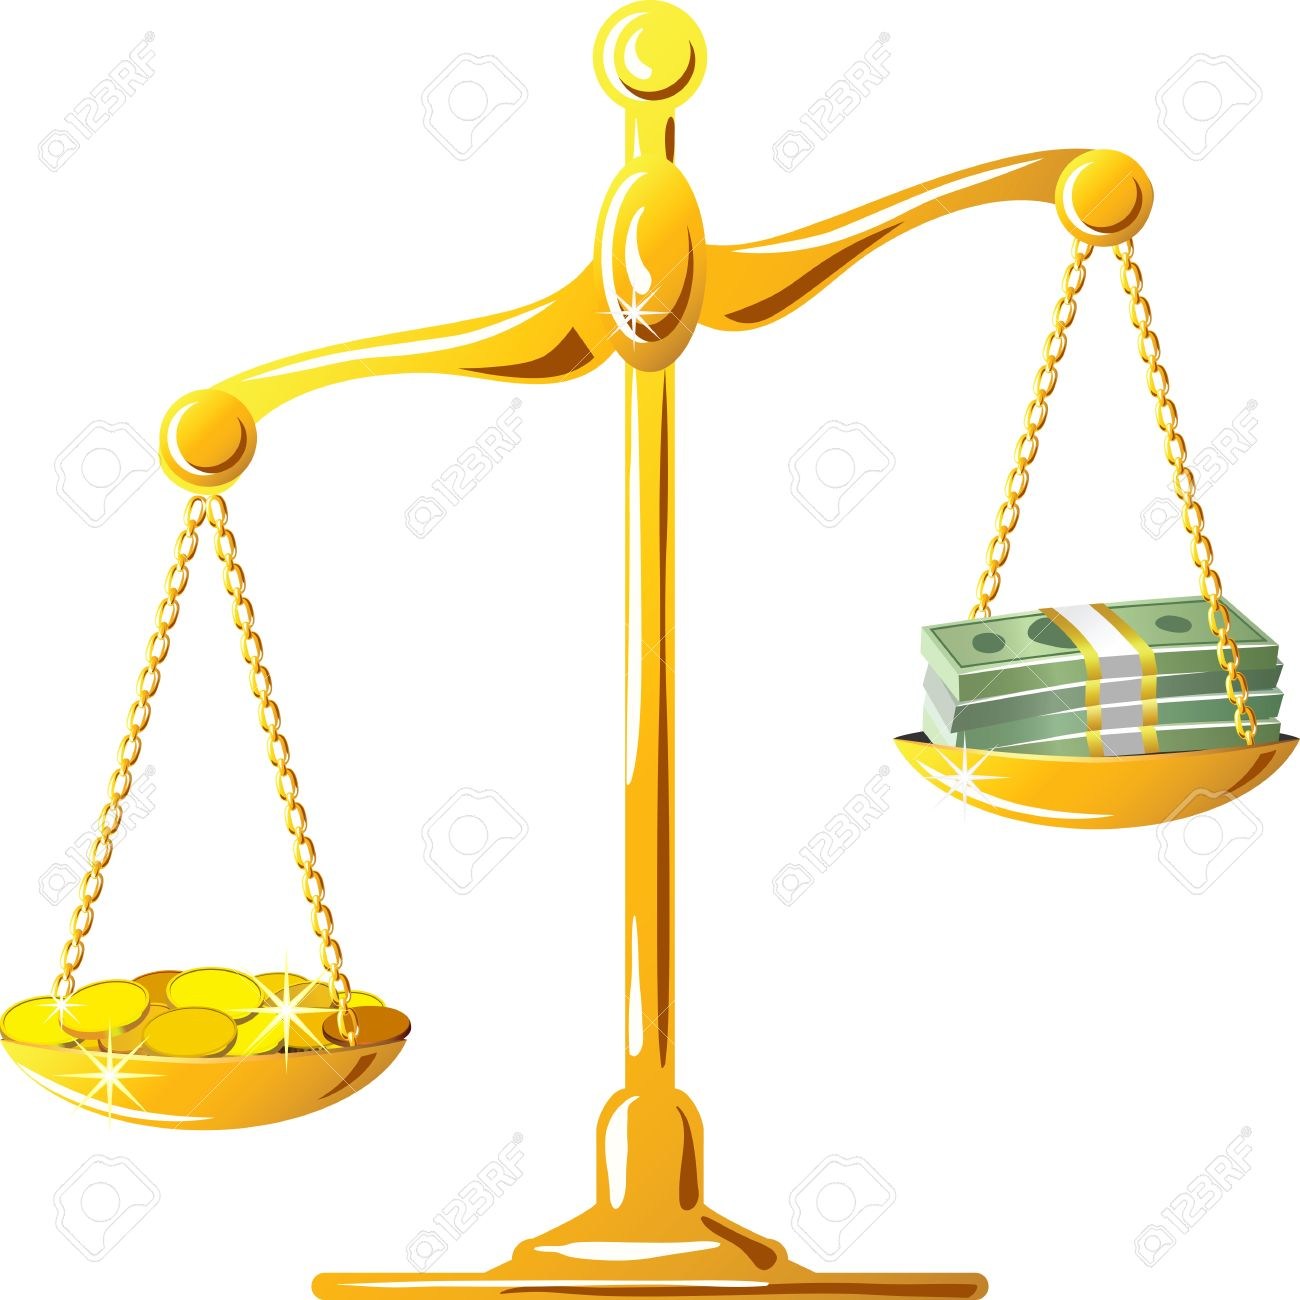 18 601 scales of justice stock illustrations cliparts and royalty rh 123rf com White Scale Clip Art Unbalanced Scales Nemesis